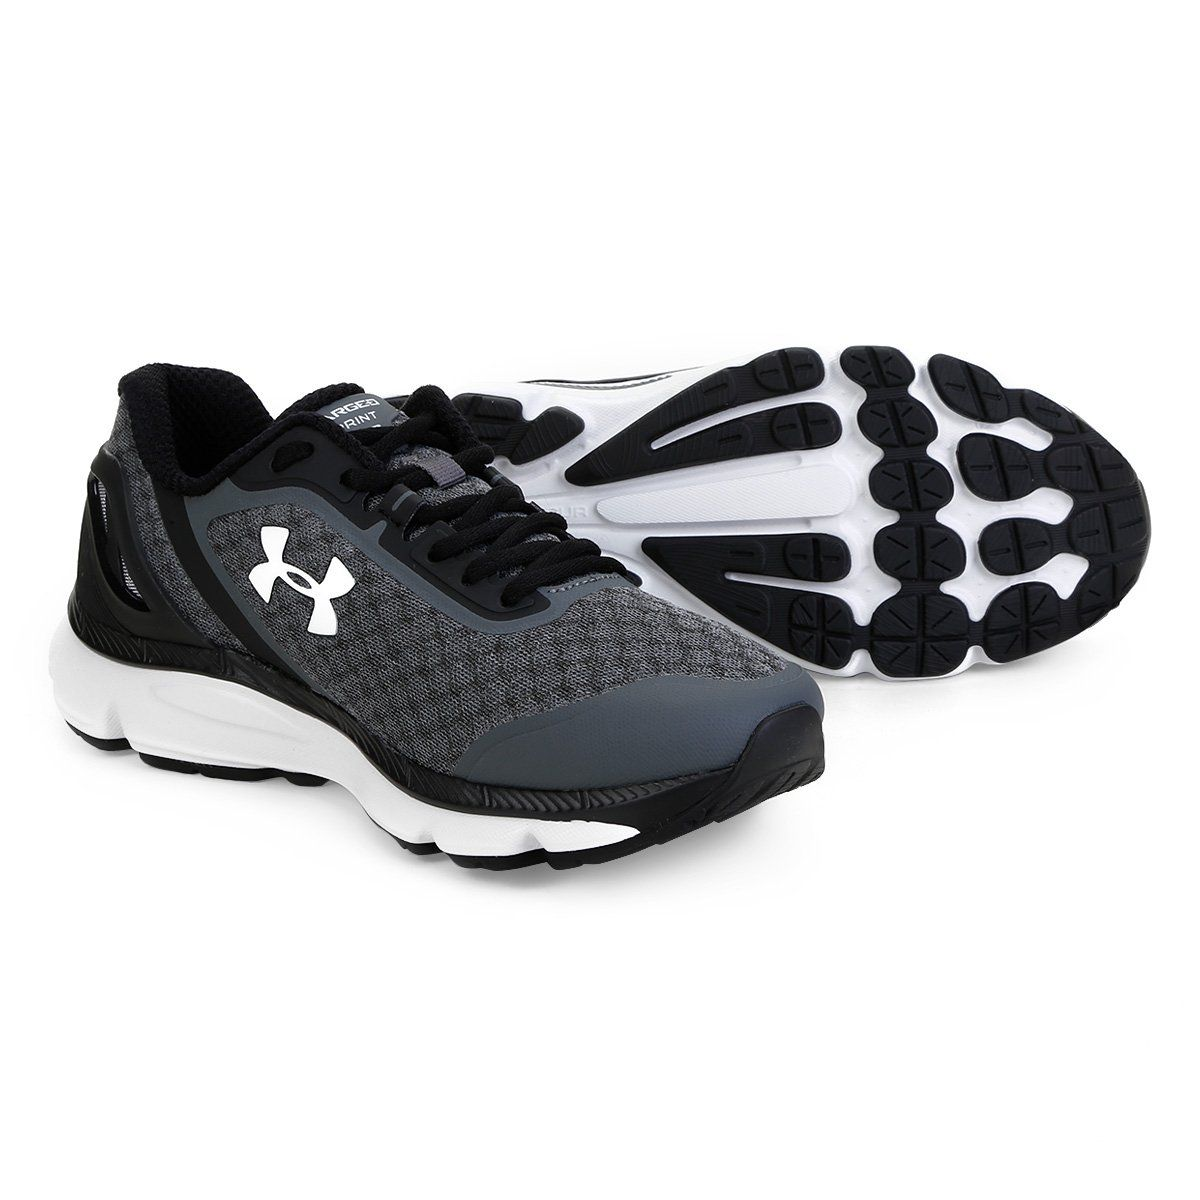 TÊNIS UNDER ARMOUR CHARGED SPRINT MASCULINO